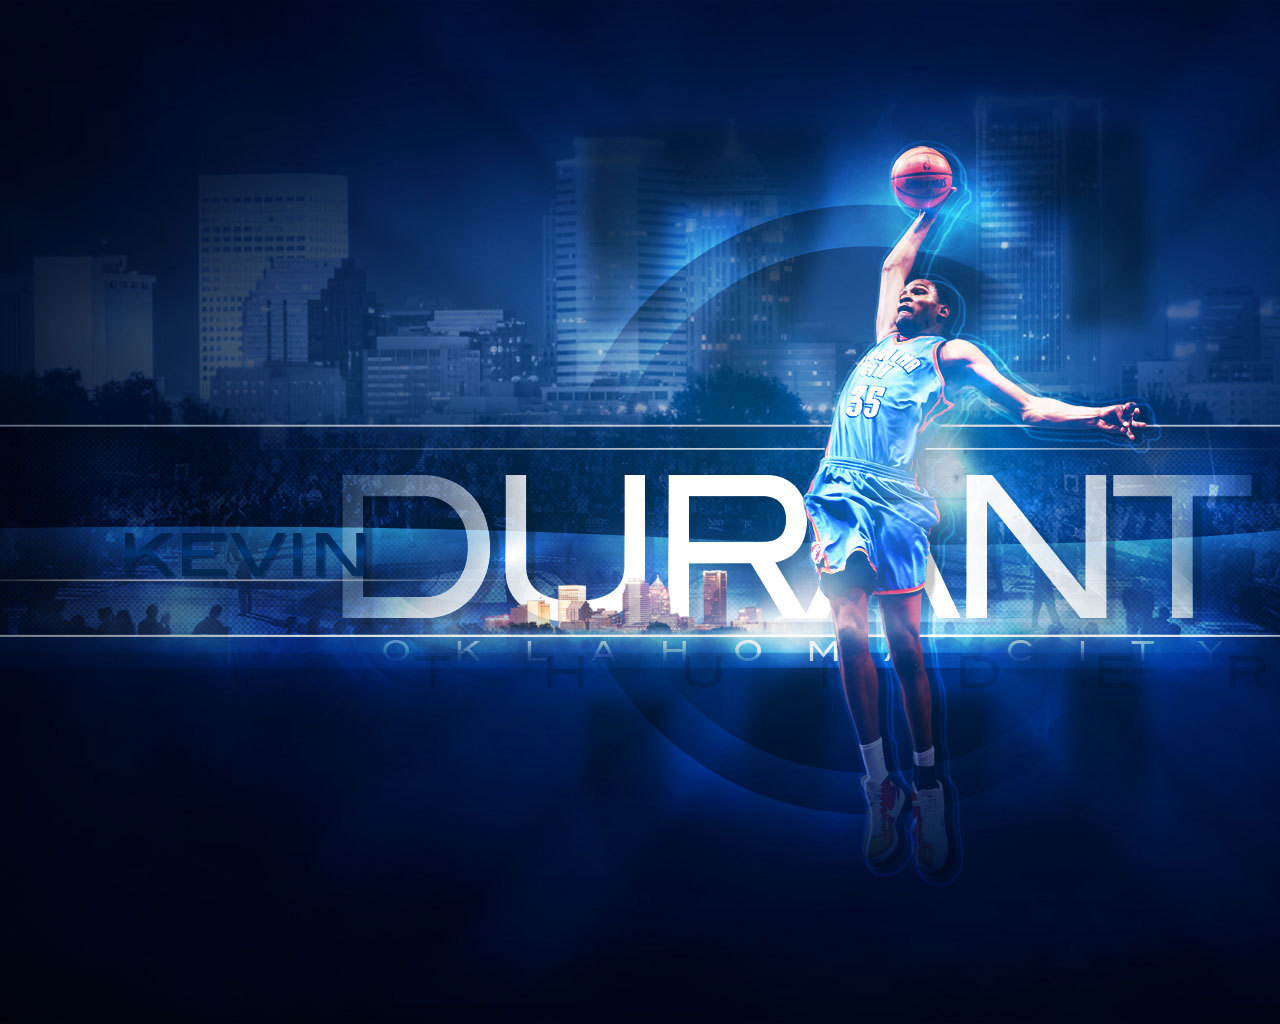 Kevin Durant images Nice Backgrounds HD wallpaper and ...